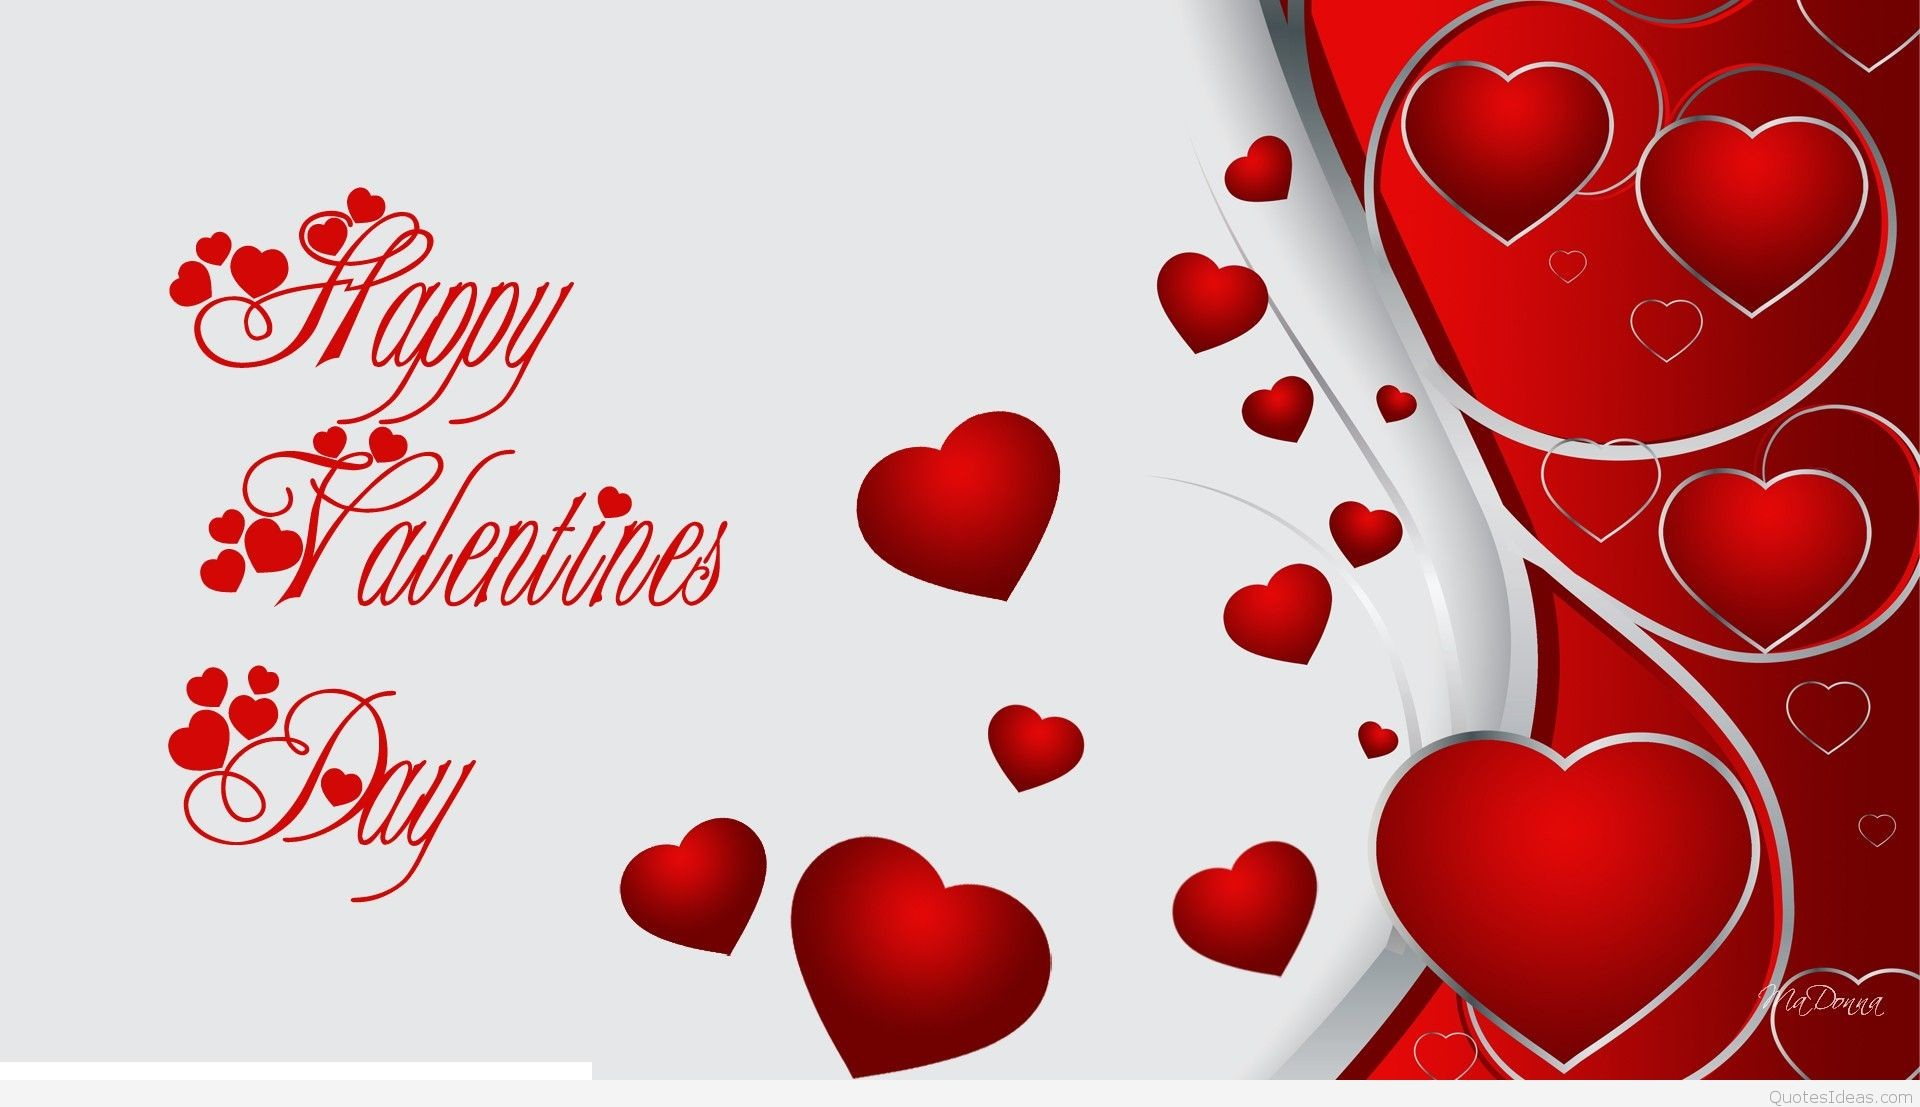 happy-valentine-day-HD-Wallpapers-for-pc2. f20c77c7dc5daf9fa5d4a0b939d04520